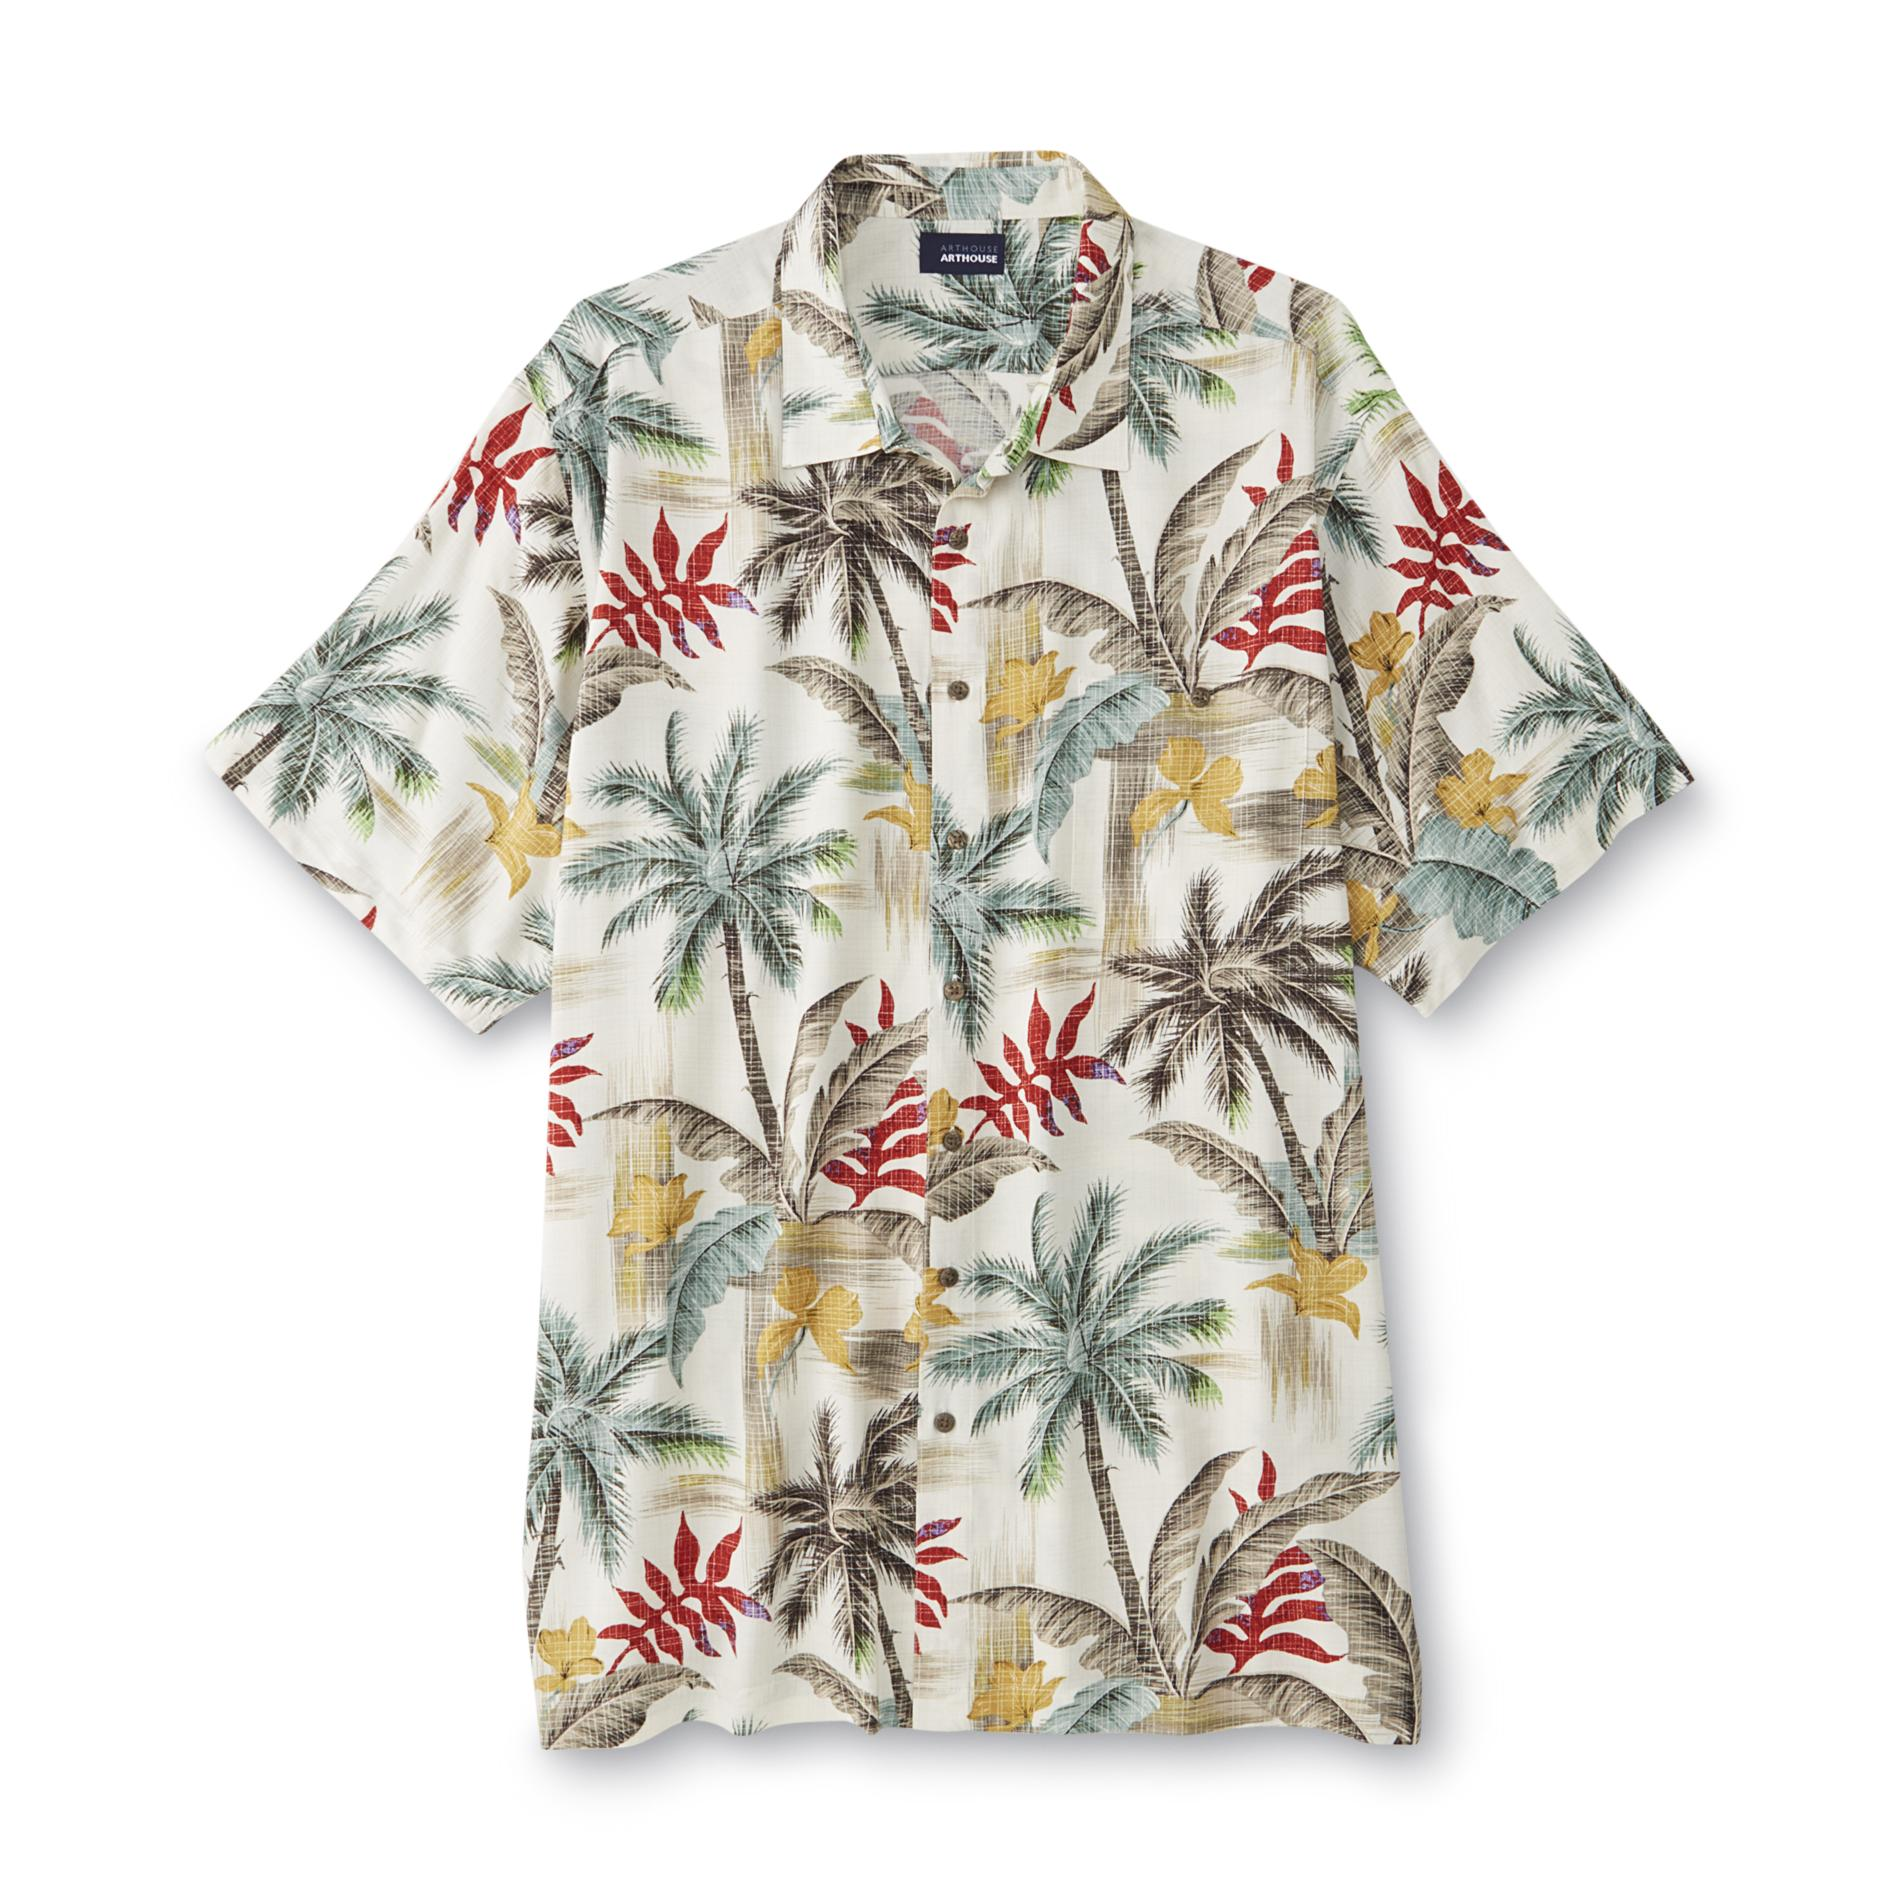 Basic Editions Men's Big & Tall Hawaiian Shirt - Palm Tree Print